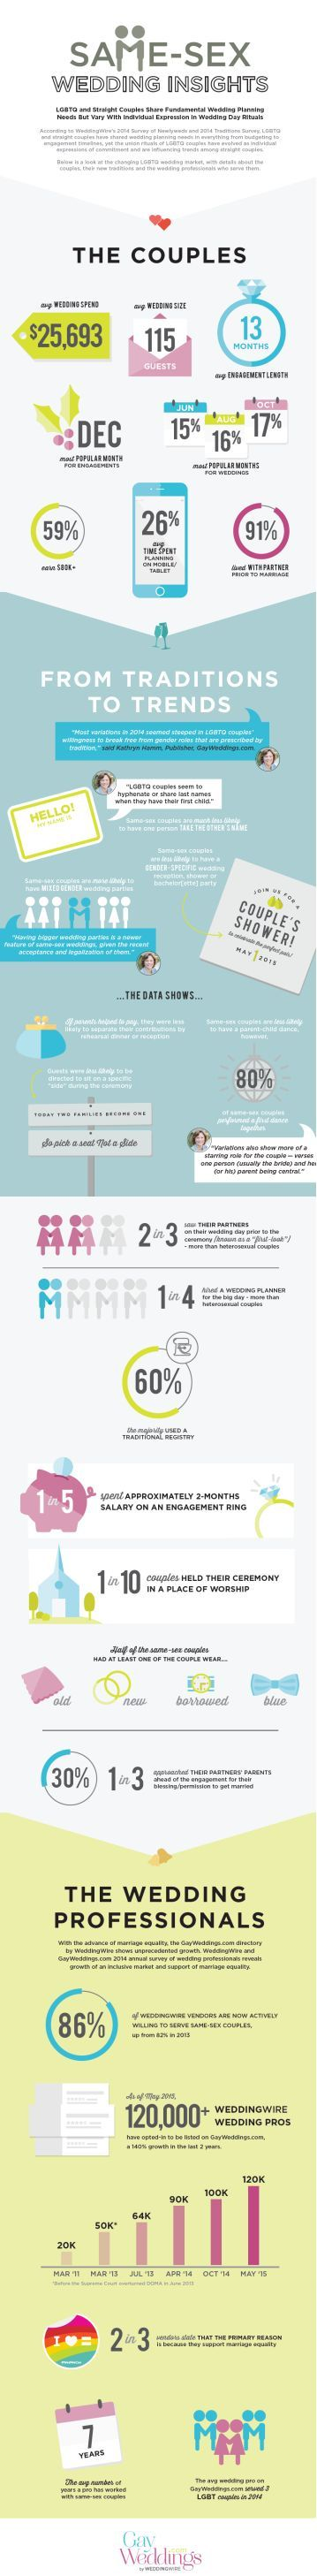 Explore the latest same-sex wedding trends with this handy #infographic.